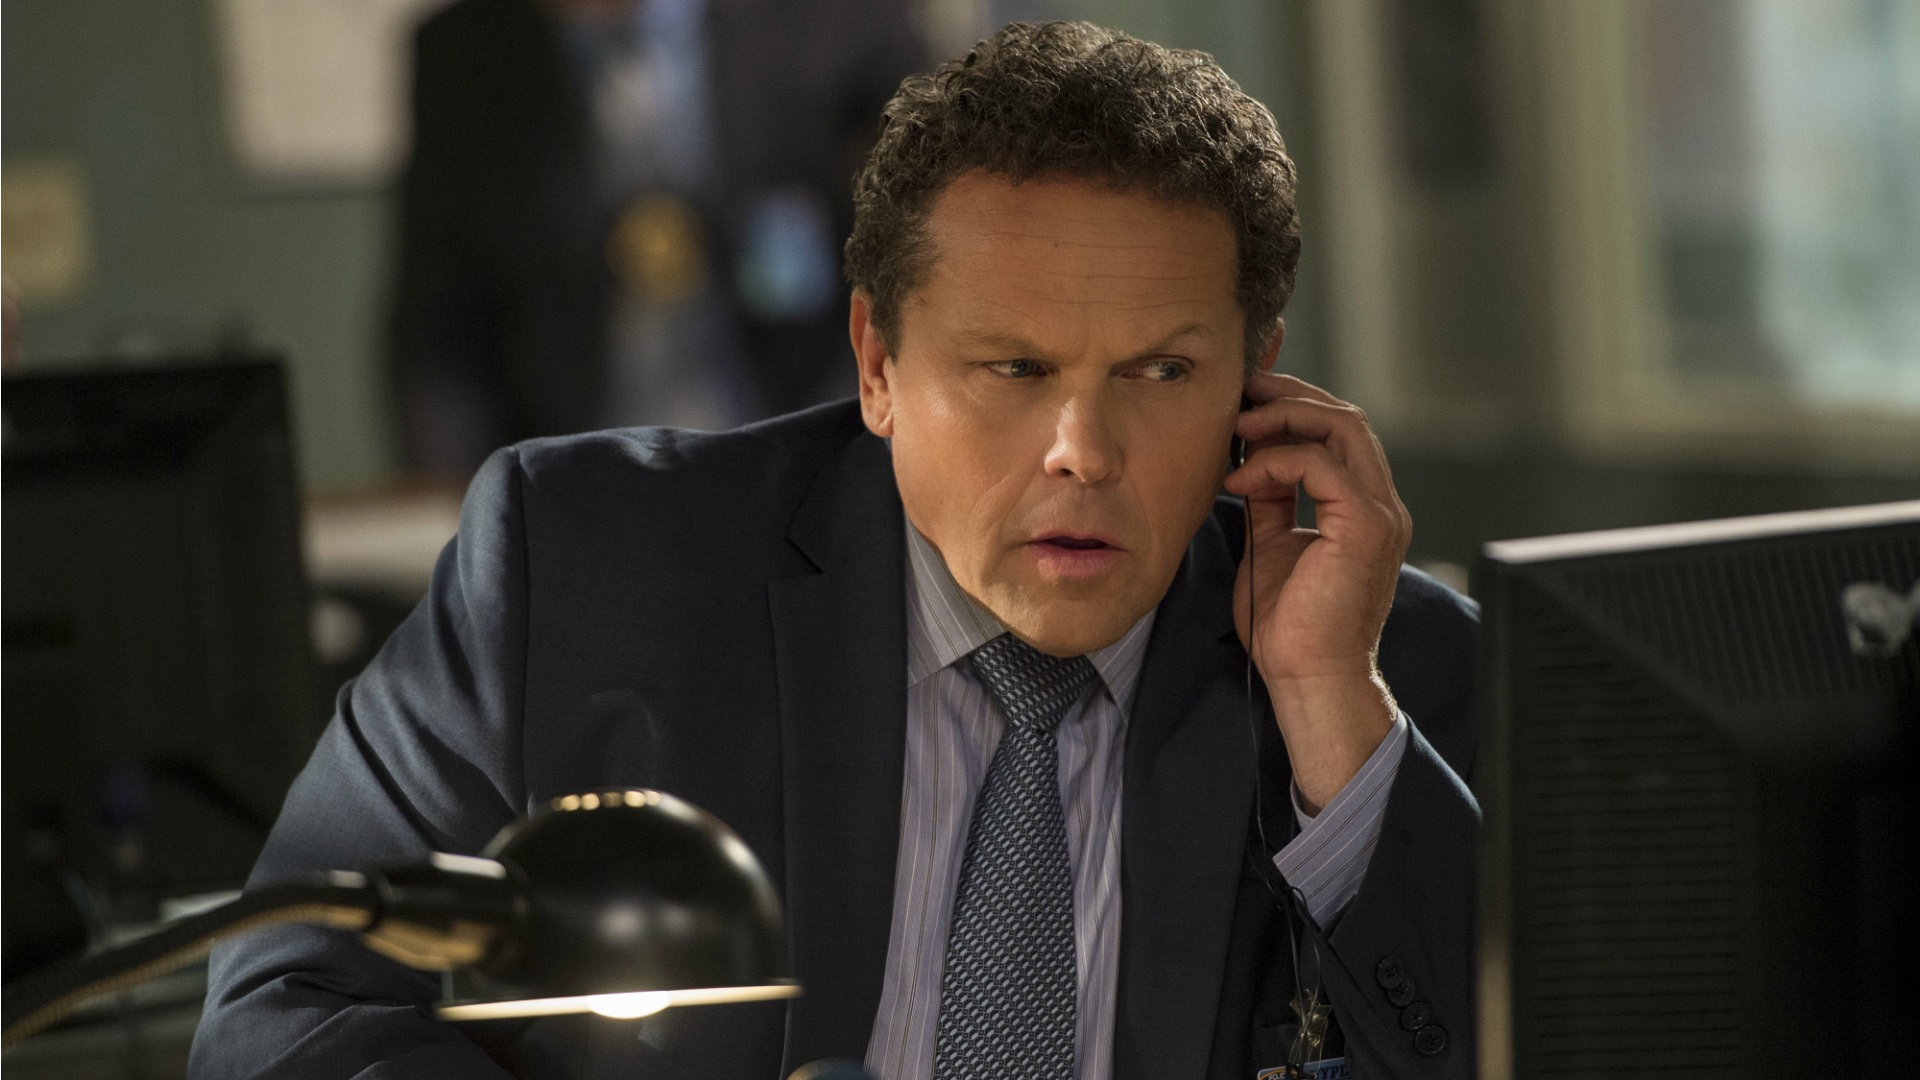 Fusco does some digging.